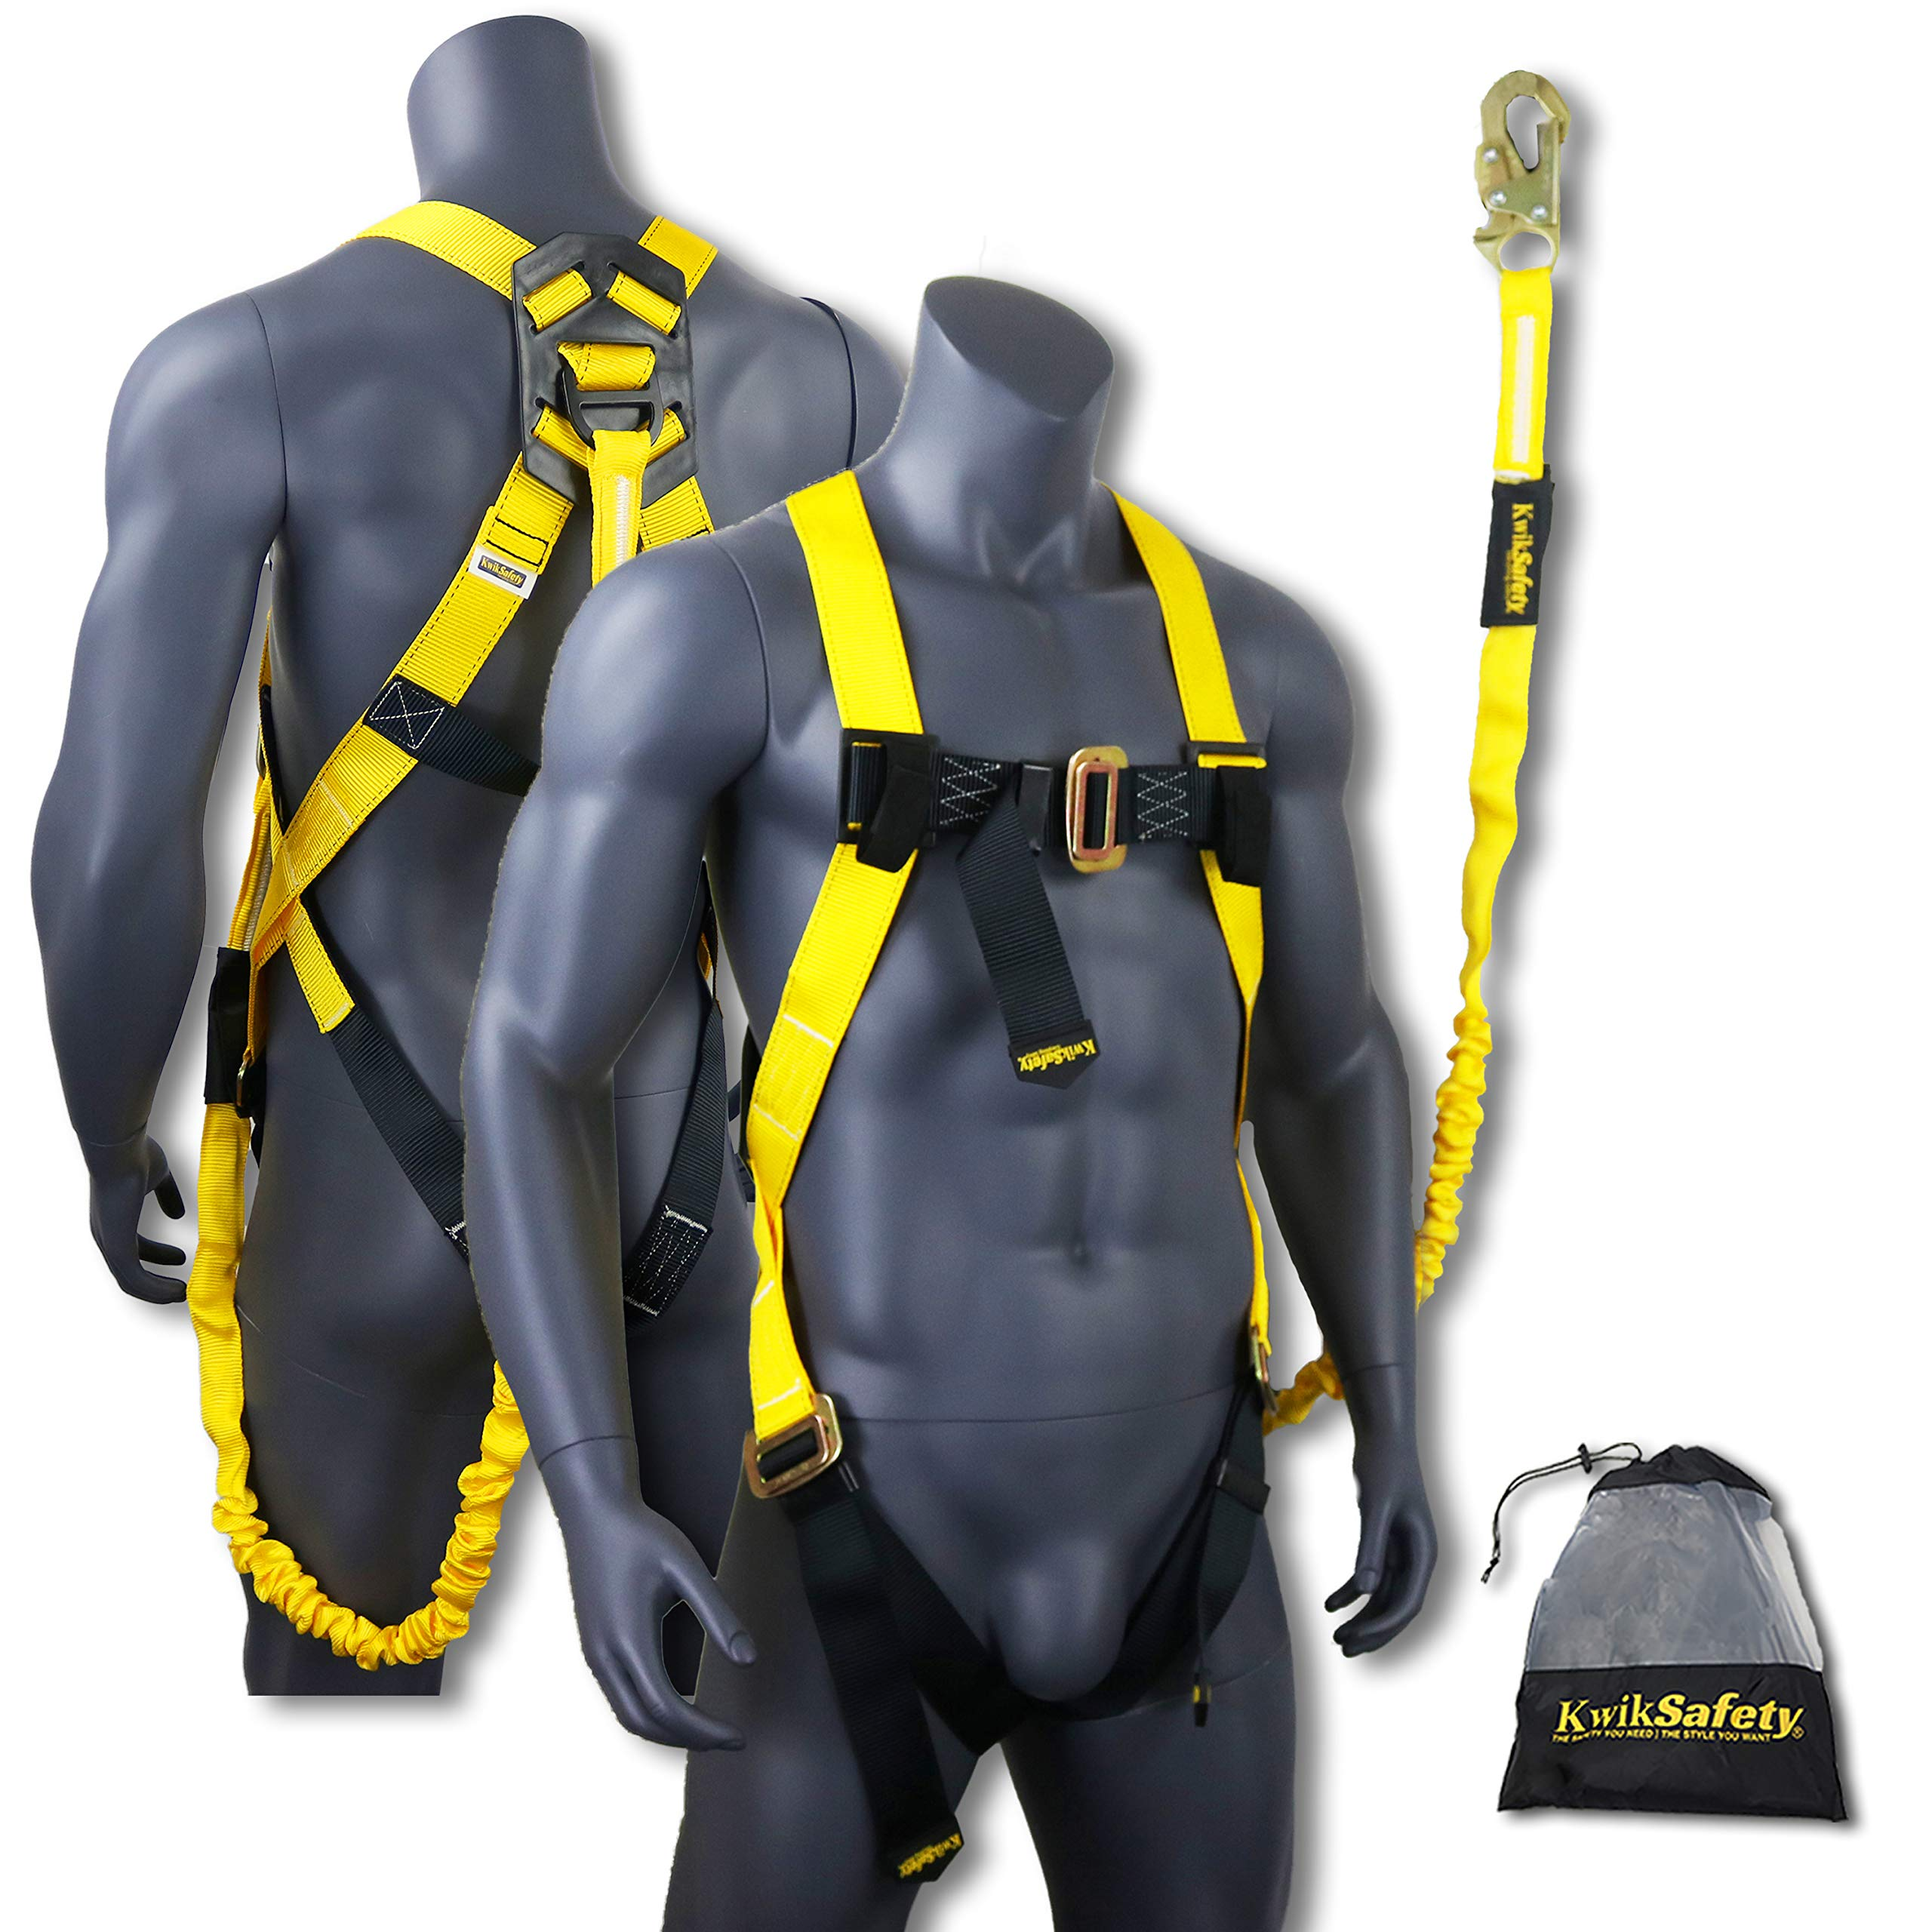 KwikSafety SCORPION | Safety Harness w/attached 6ft. Tubular Lanyard on back | OSHA Approved ANSI Compliant Fall Protection | INTERNAL Shock Absorbing Lanyard | Construction Carpenter Scaffolding …